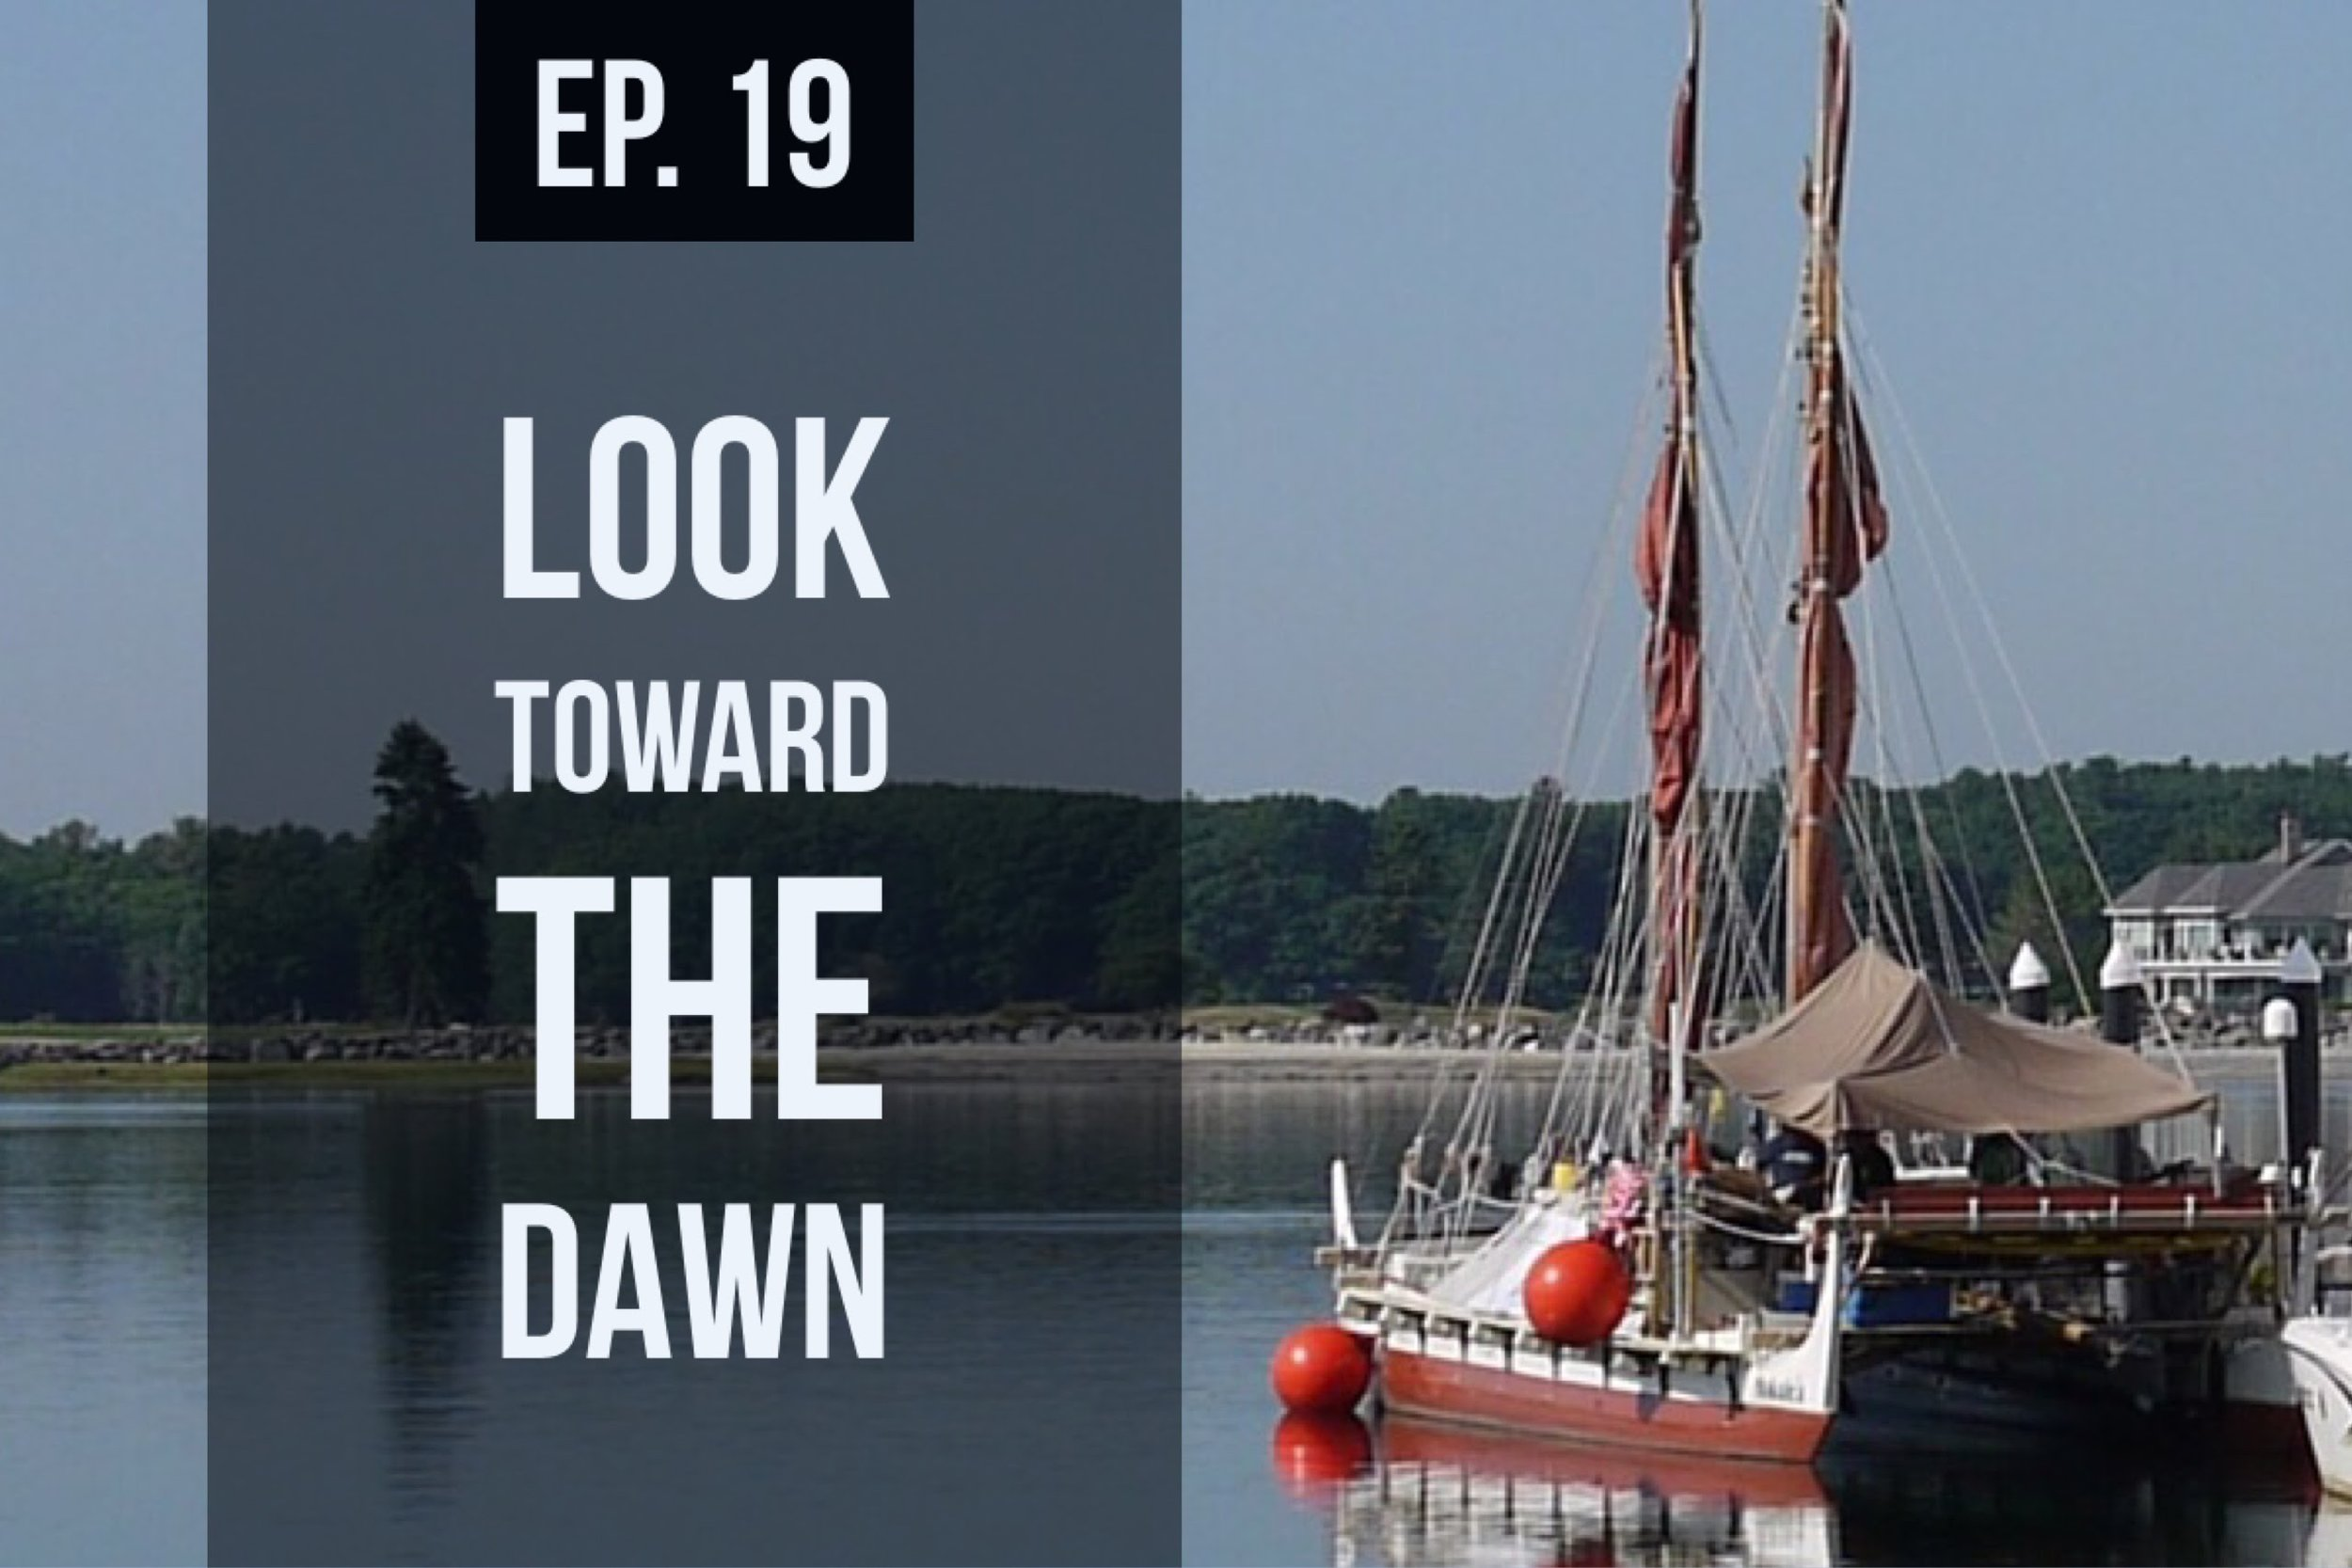 Episode 19: Look Toward the Dawn